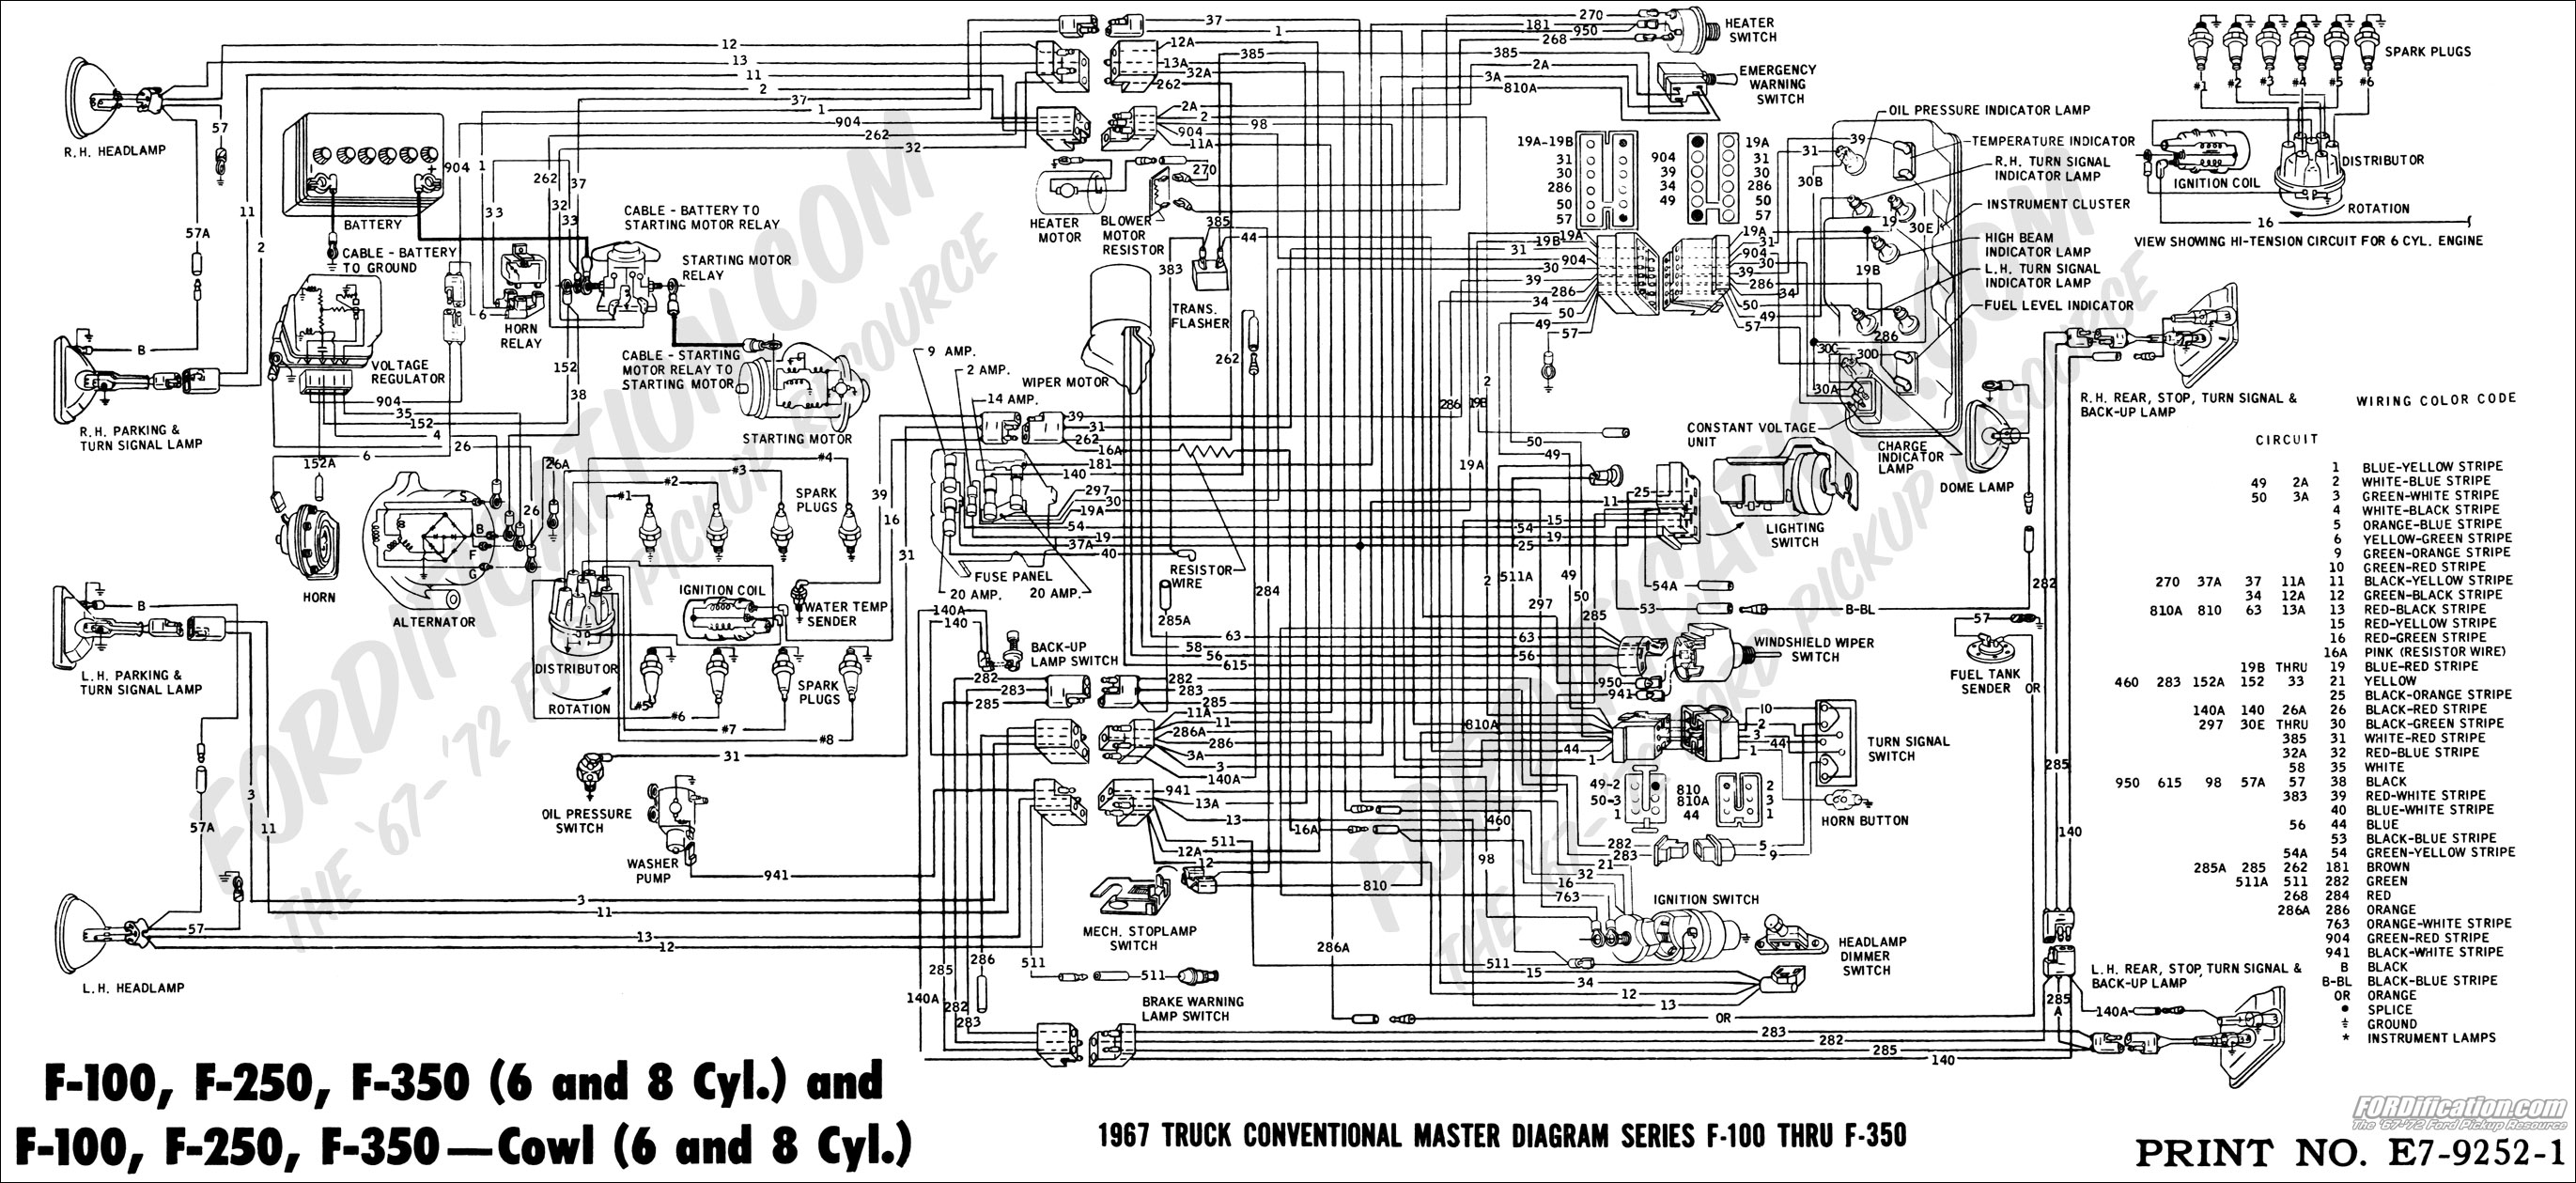 67masterdiagram 99 f150 wiring diagram 99 f150 stereo wiring diagram \u2022 wiring 1999 ford ranger xlt wiring diagrams at fashall.co